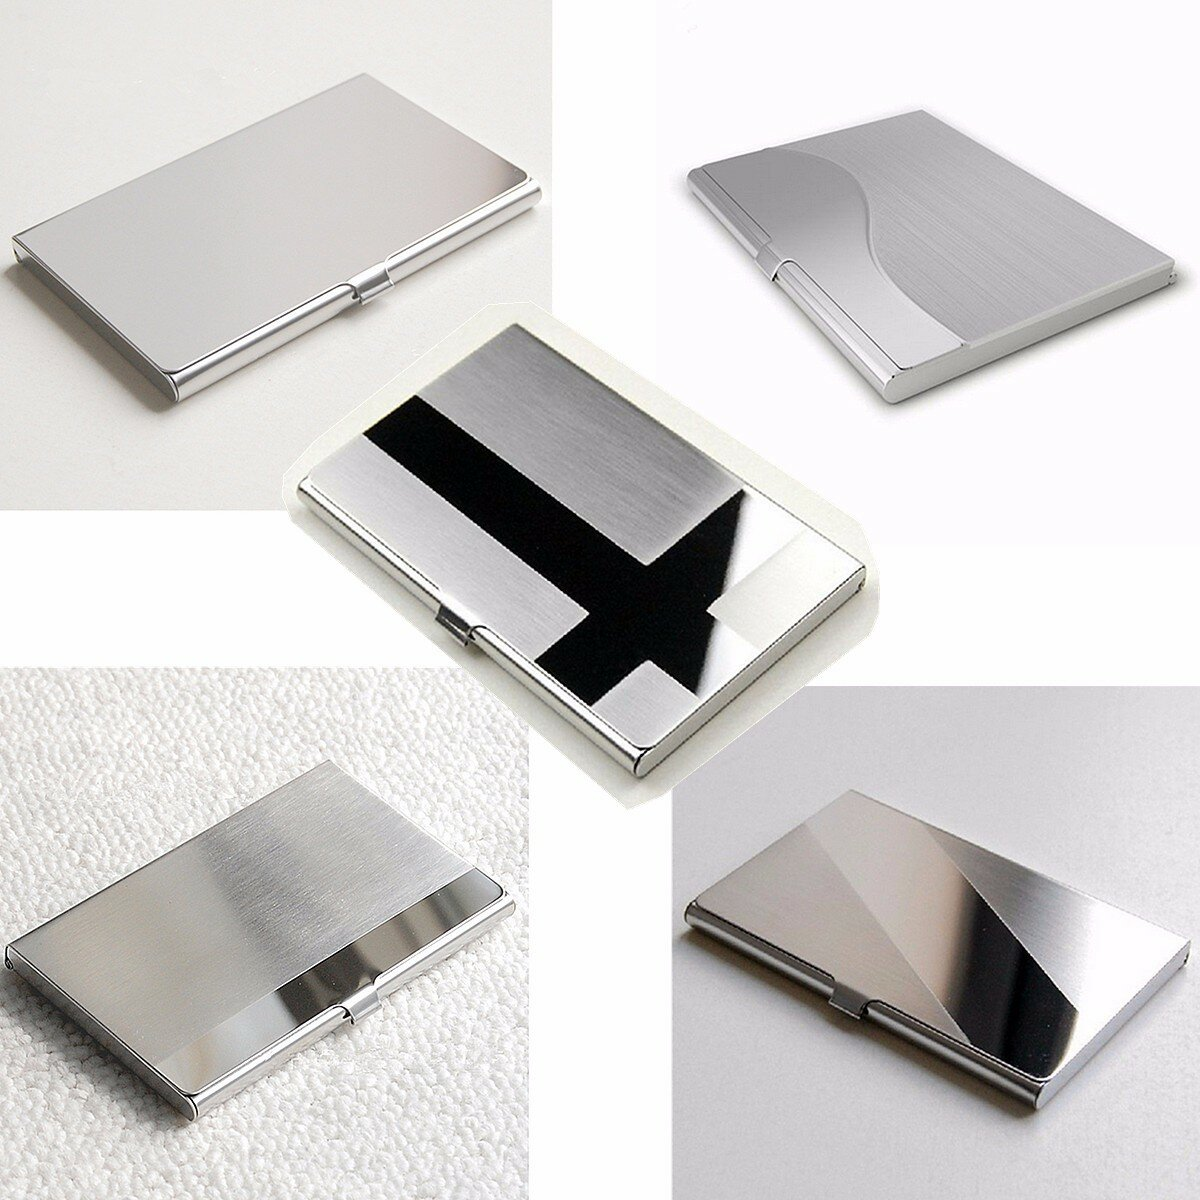 Stainless steel business id credit card holder name card wallet stainless steel business id credit card holder name card wallet metal pocket box case holder reheart Images